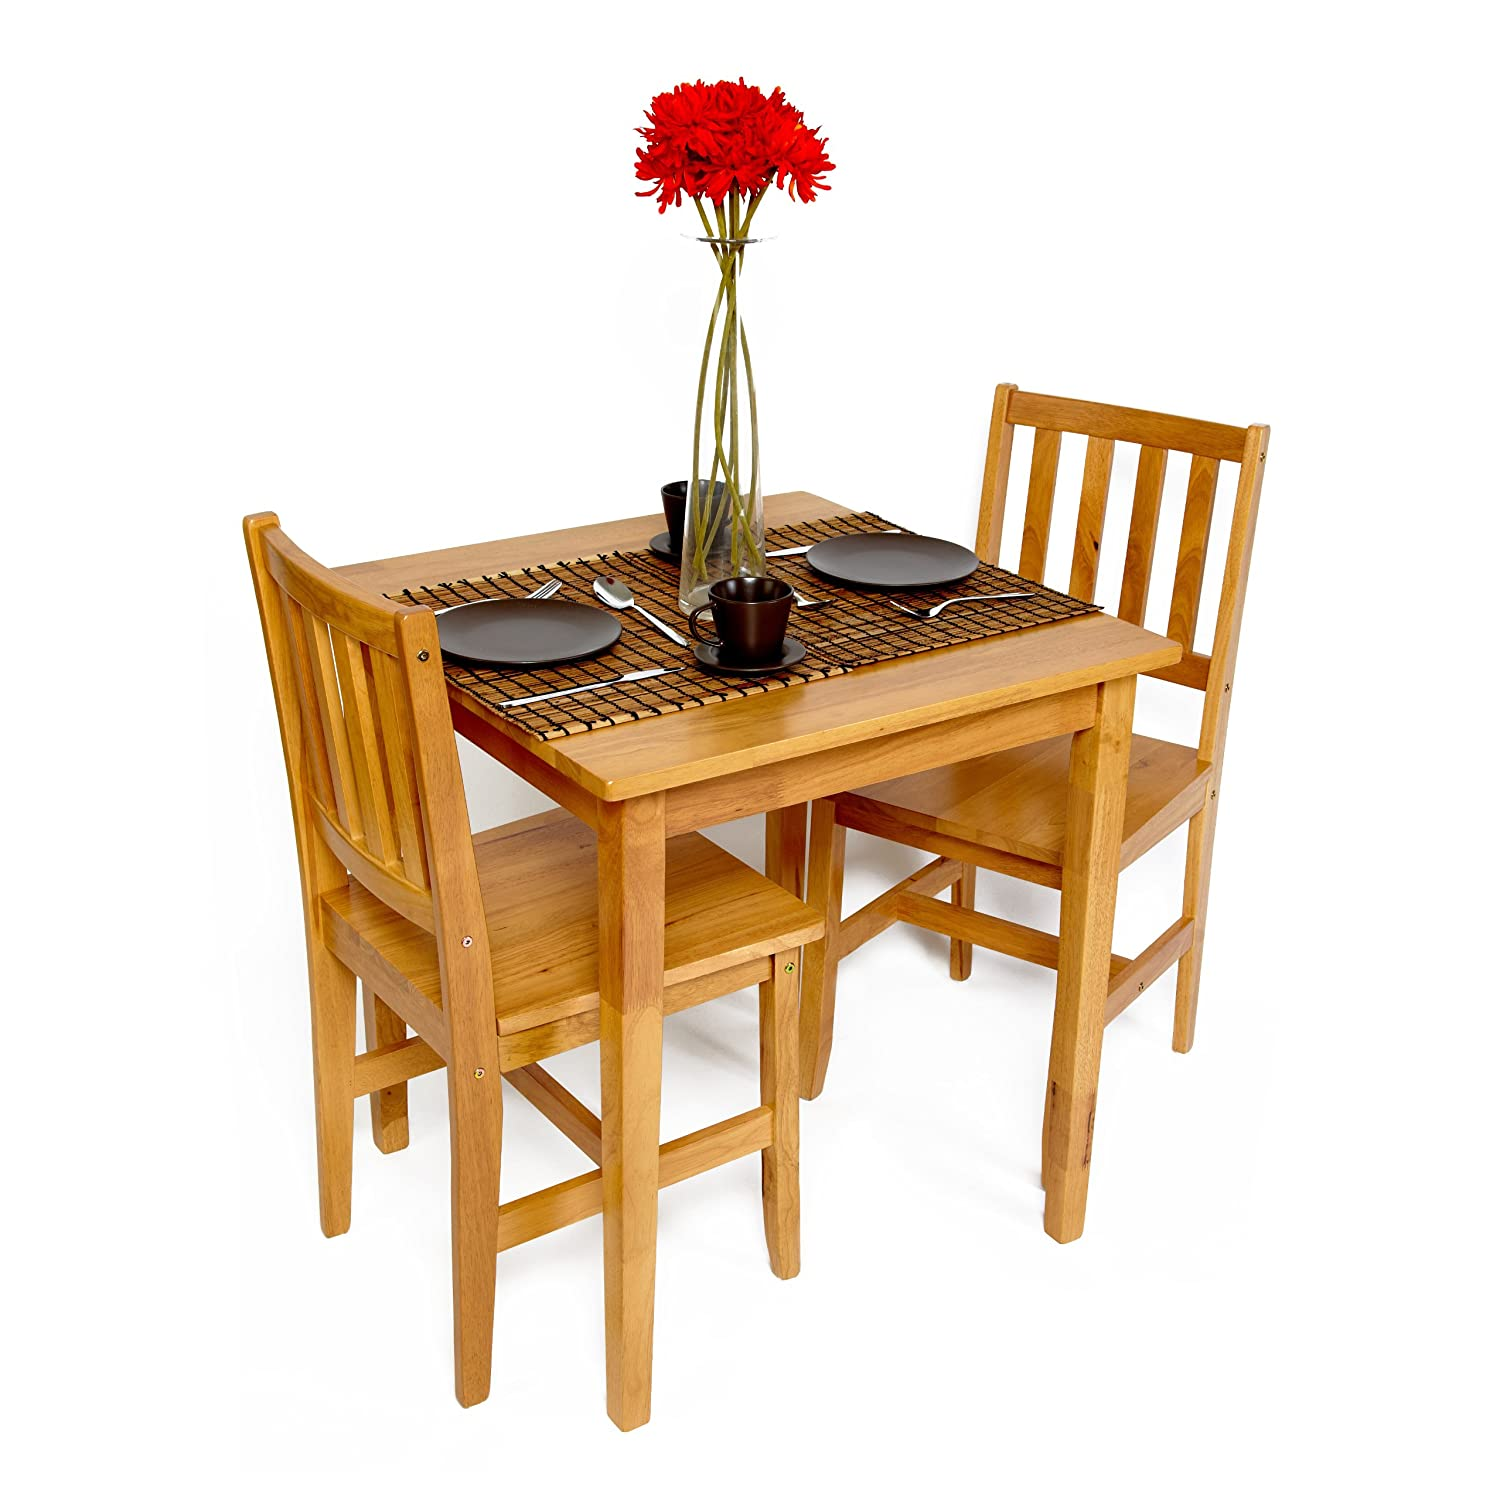 Table and chairs set dining bistro small cafe tables wood for Mini dining table and chairs